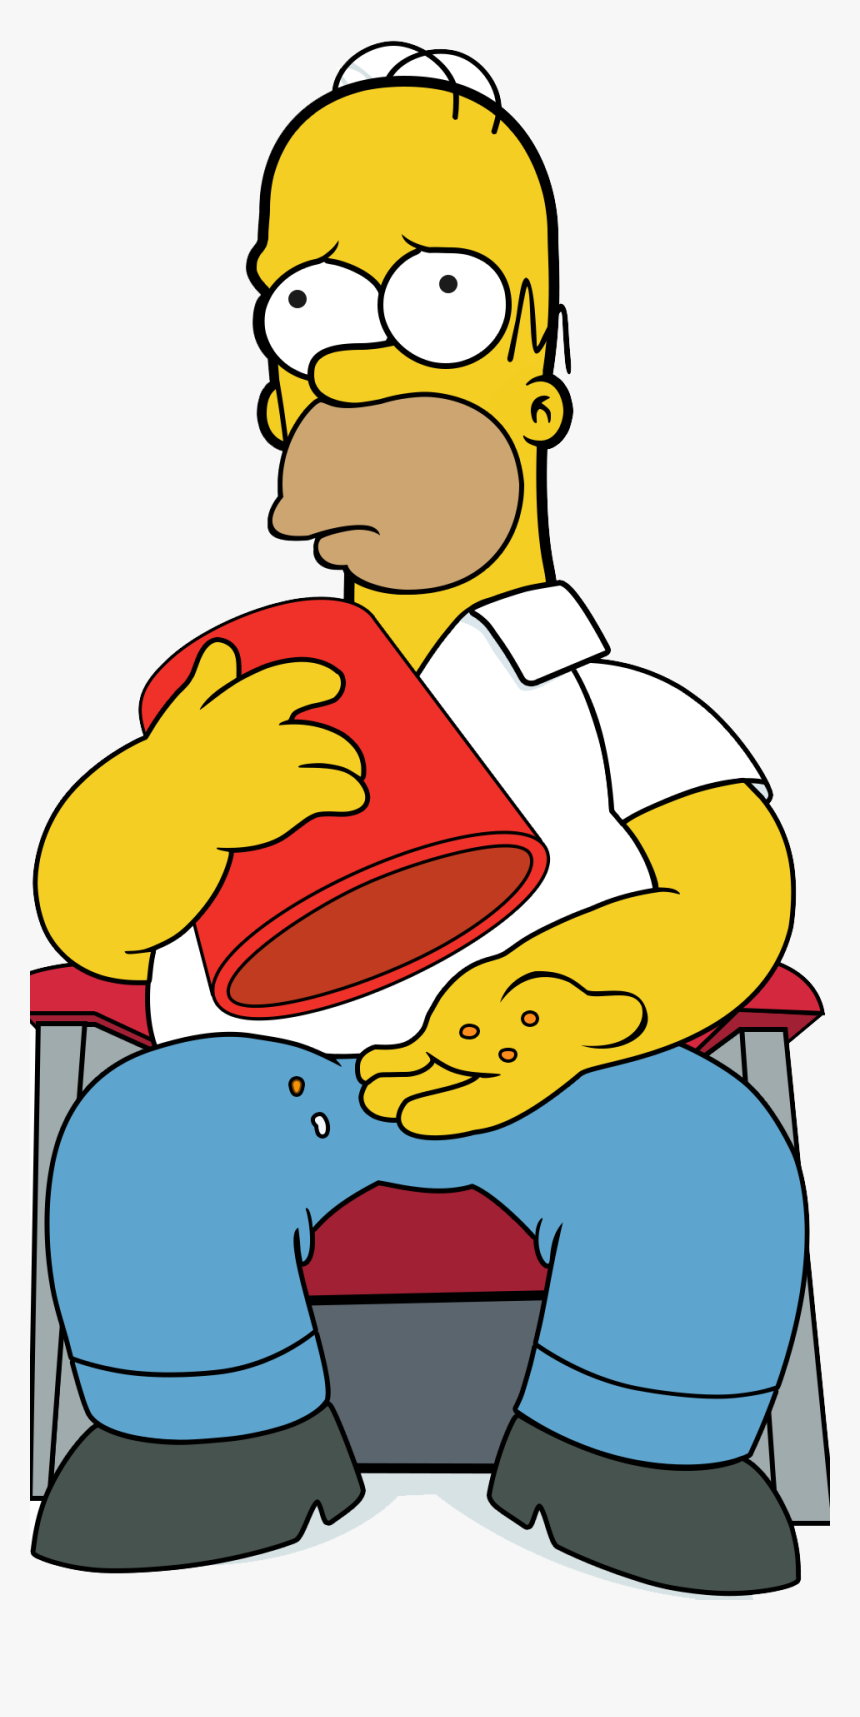 The Simpsons Movie Png Photos Title Simpsons Film Png Transparent Png Kindpng